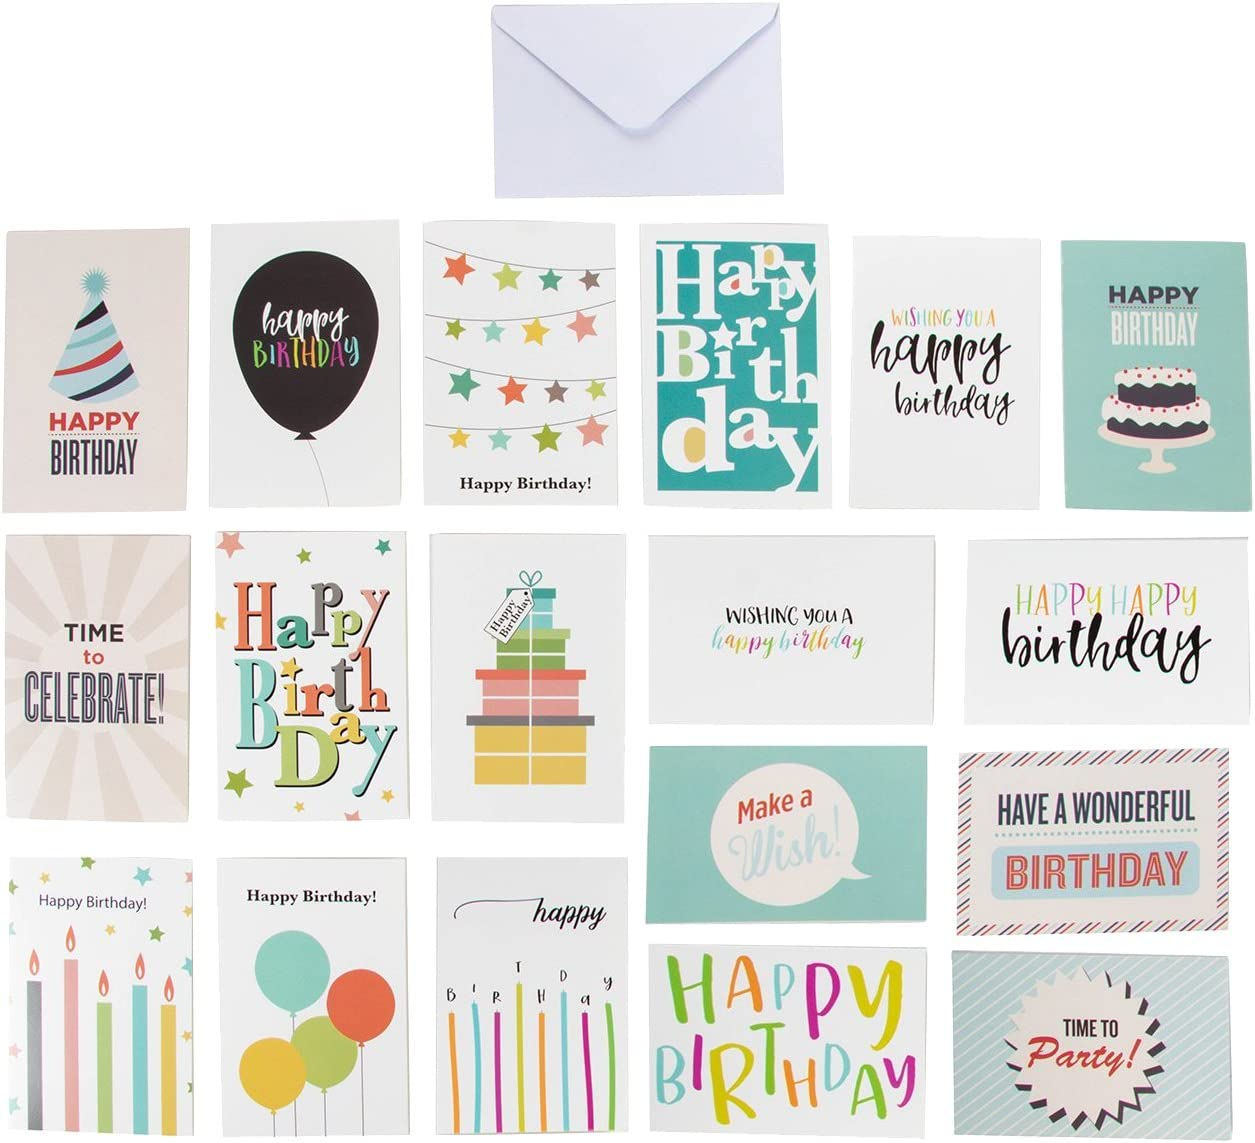 Selection Of 9 Generic Happy Birthday Cards Contemporary Male Female Boy Girl